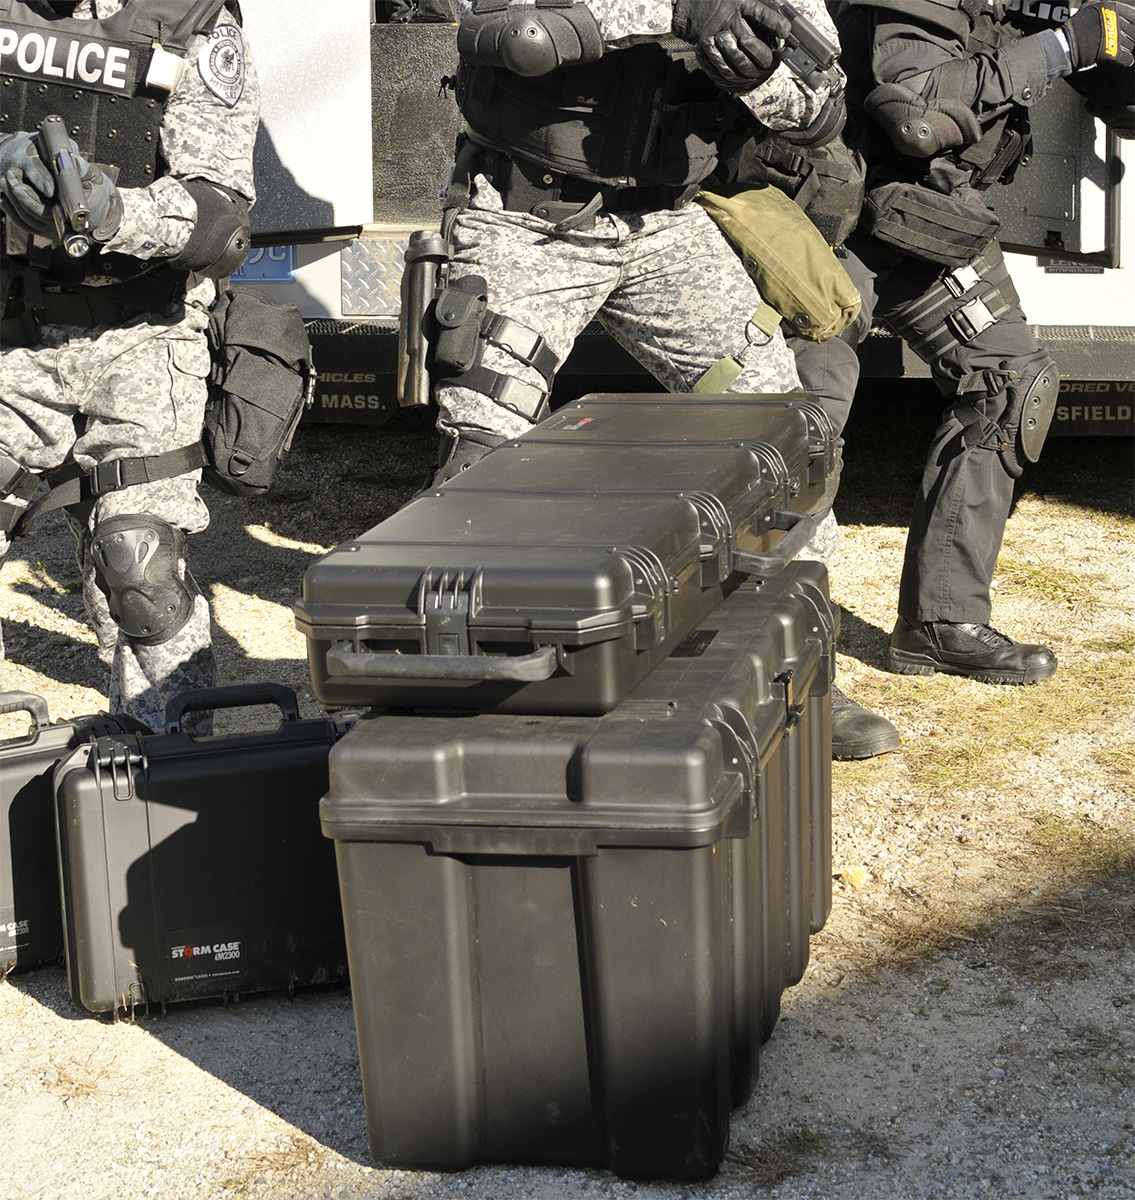 shop pelican storm im3200 buy police swat rifle hard case